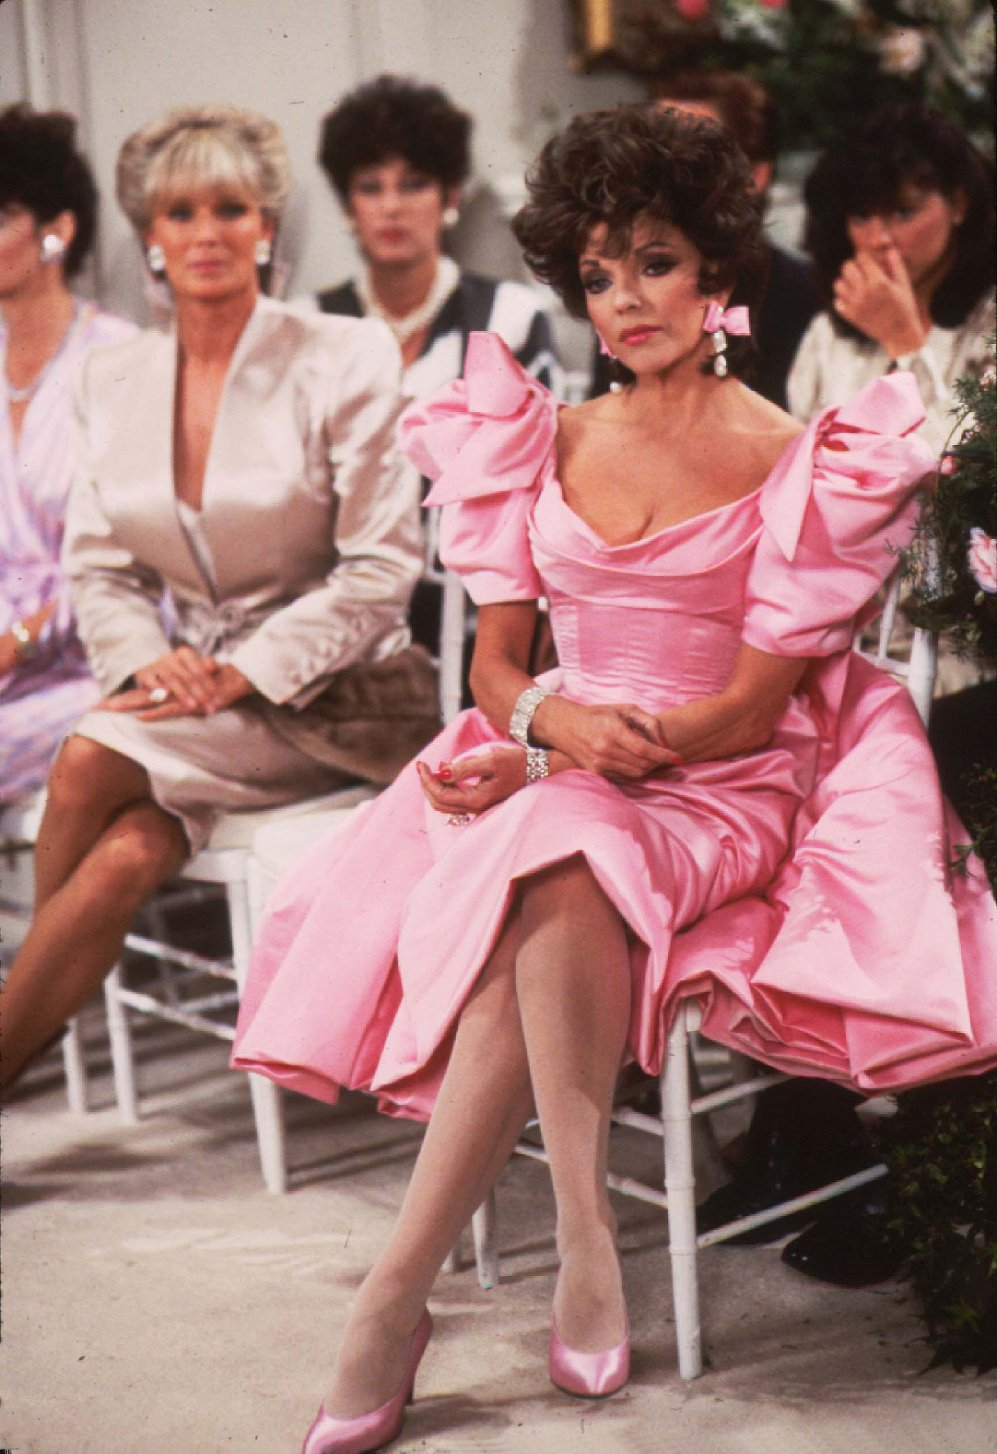 Los Angeles.CA.USA.  Linda Evans and Joan Collins in a publicity still for the 1980s tv series Dynasty., Image: 97341128, License: Rights-managed, Restrictions: Supplied by Landmark Media. Editorial Only. Landmark Media is not the copyright owner of these Film or TV stills but provides a service only for recognised Media outlets., Model Release: no, Credit line: Profimedia, Landmark